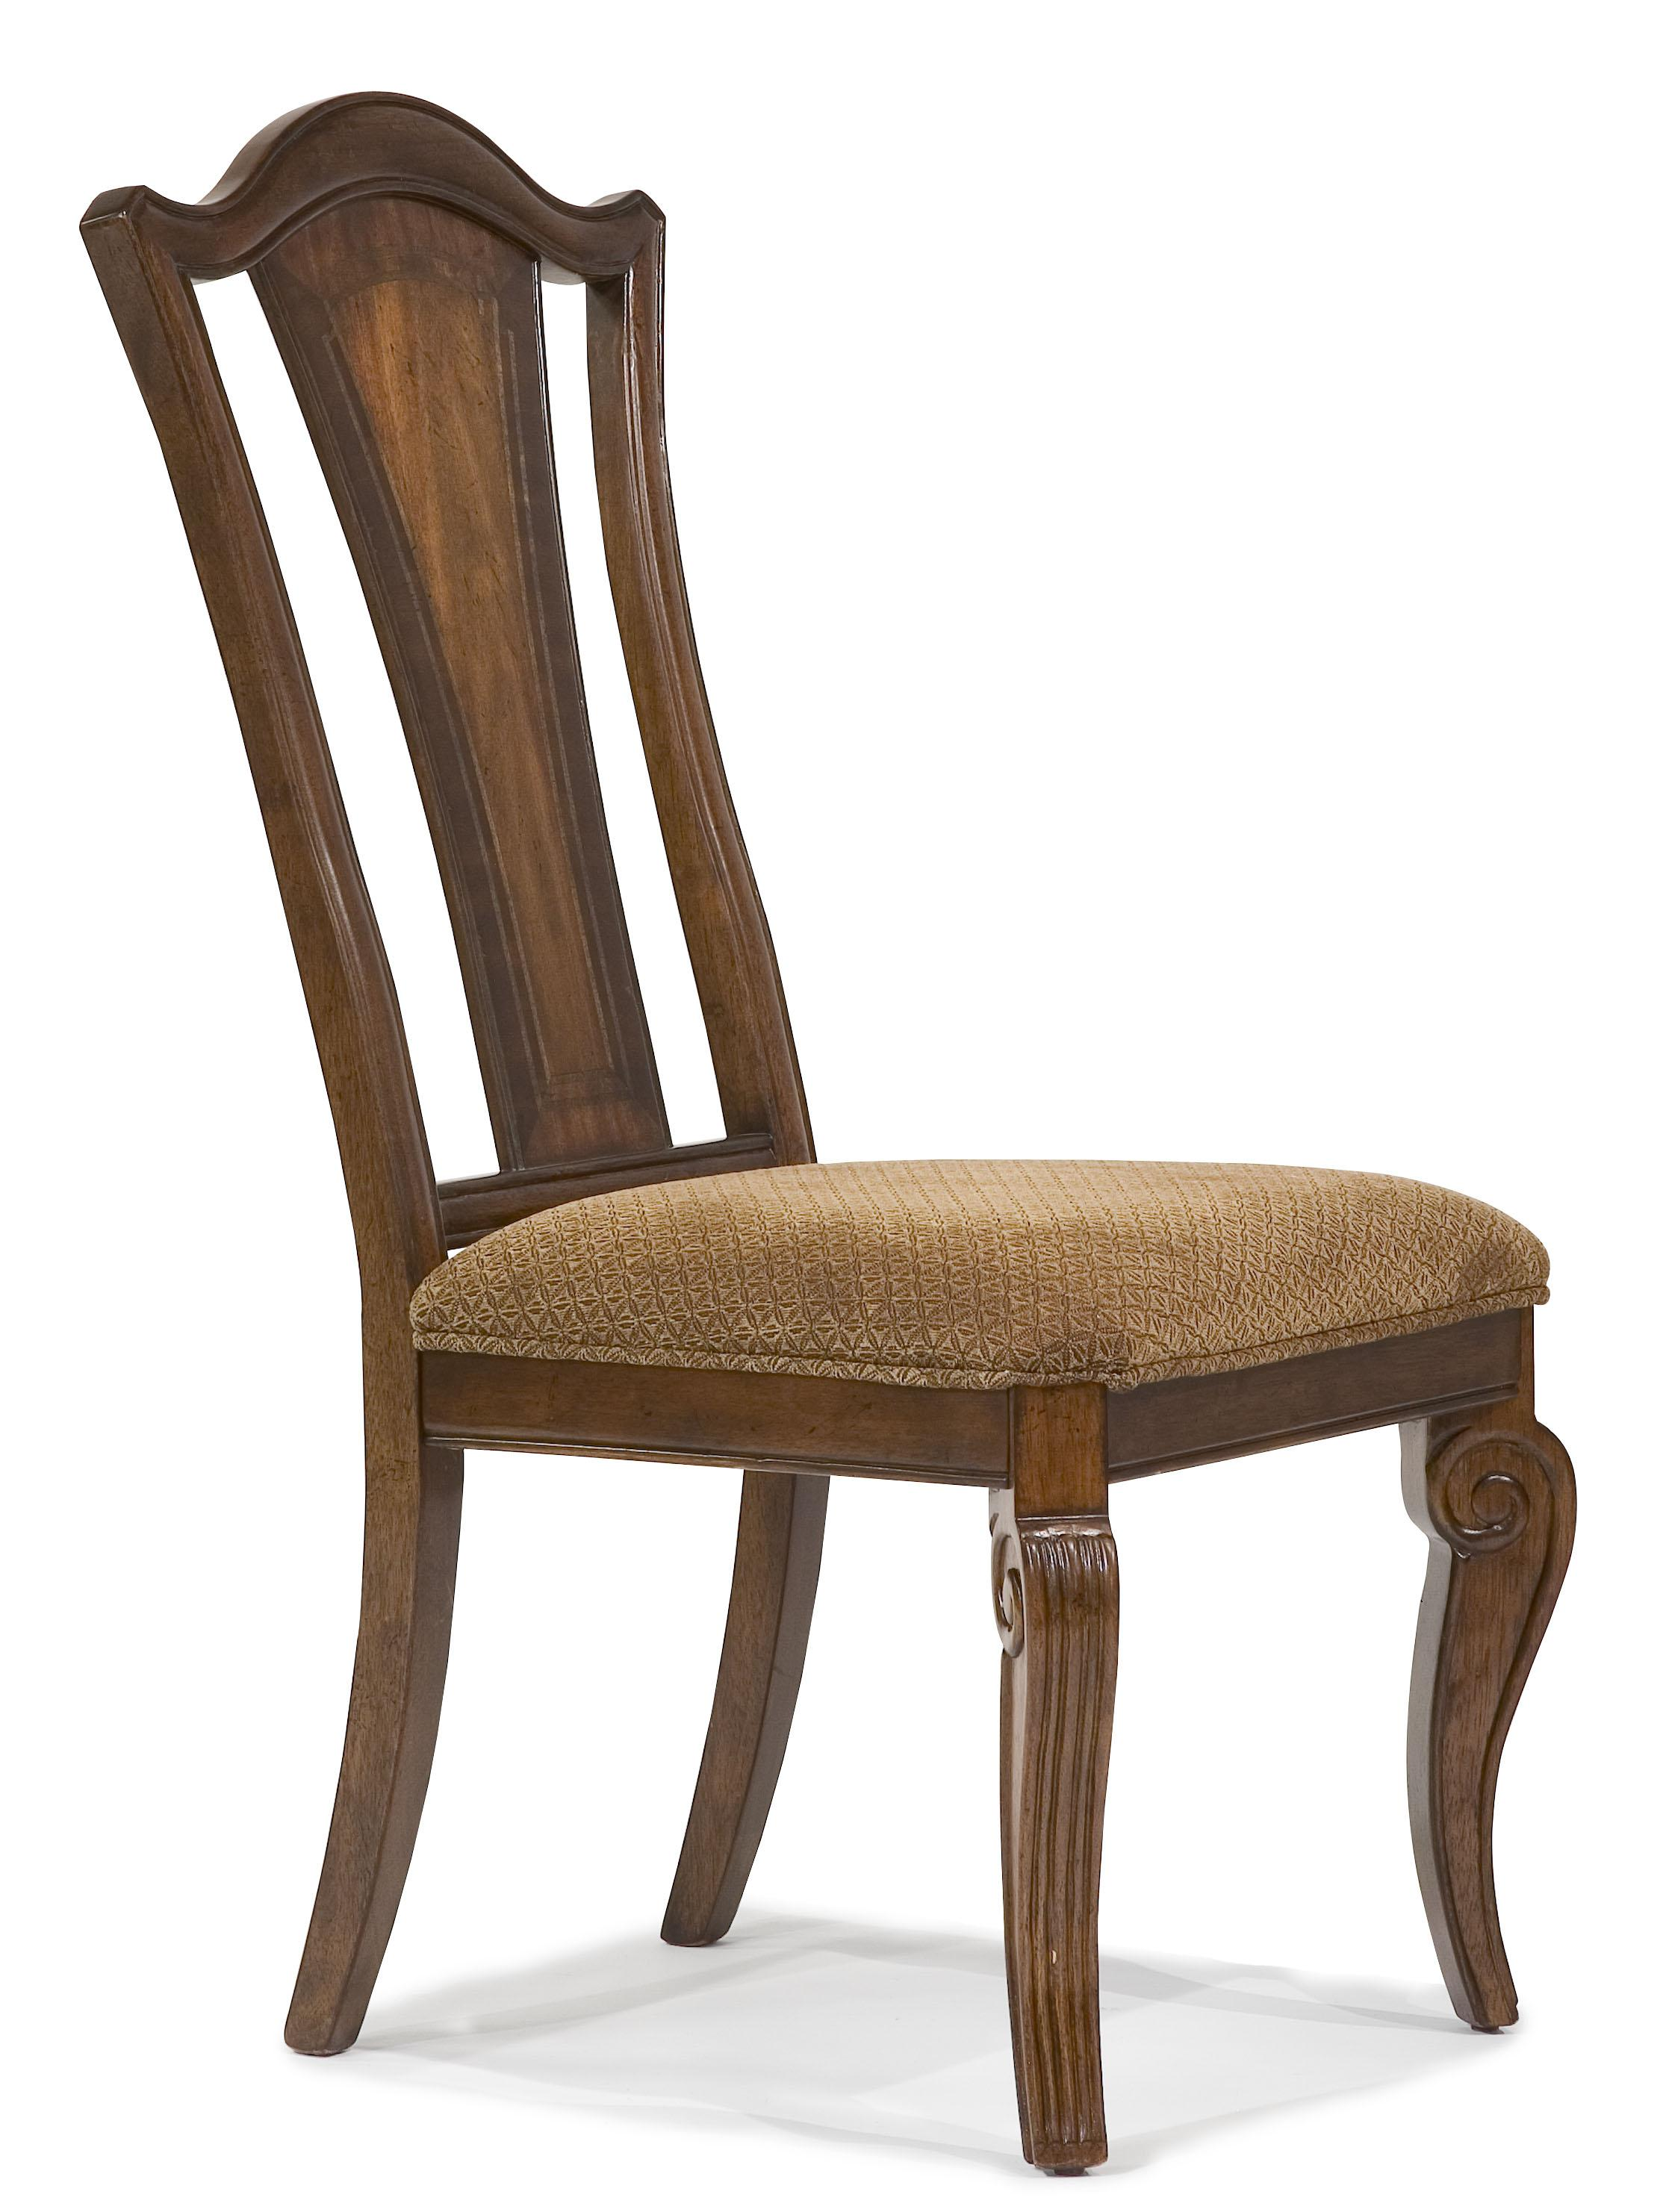 Legacy Classic American Traditions Splat Back Side Chair - Item Number: 9350-240